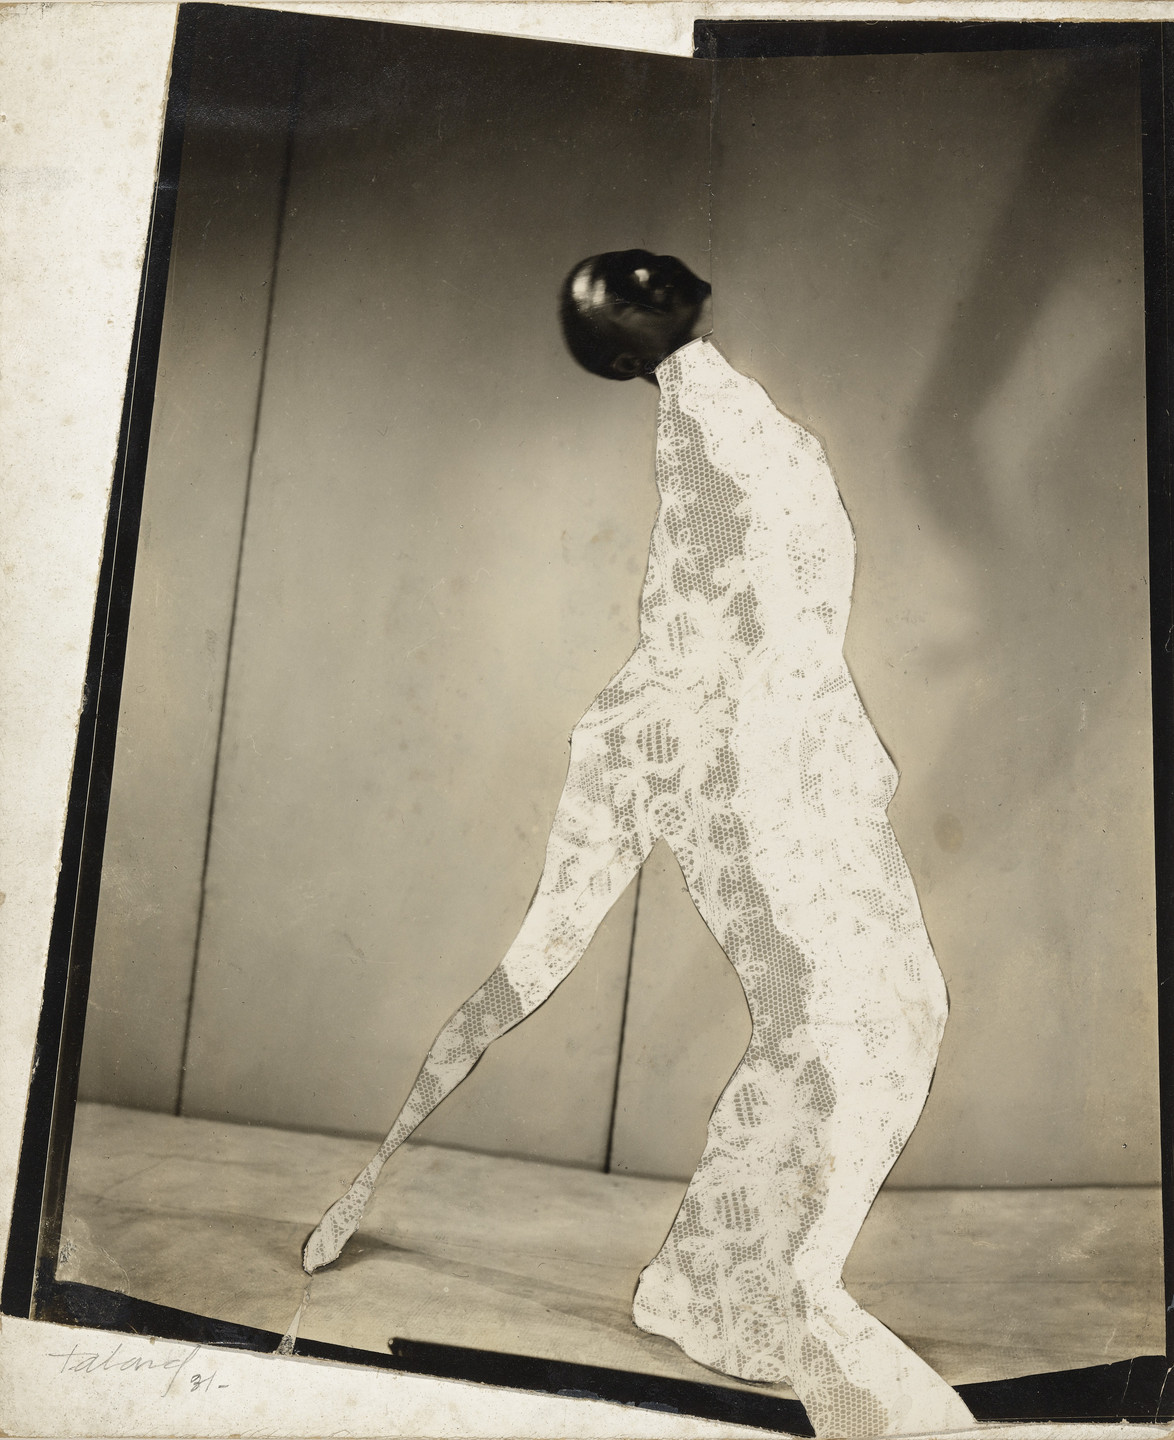 Maurice Tabard. Untitled. 1931